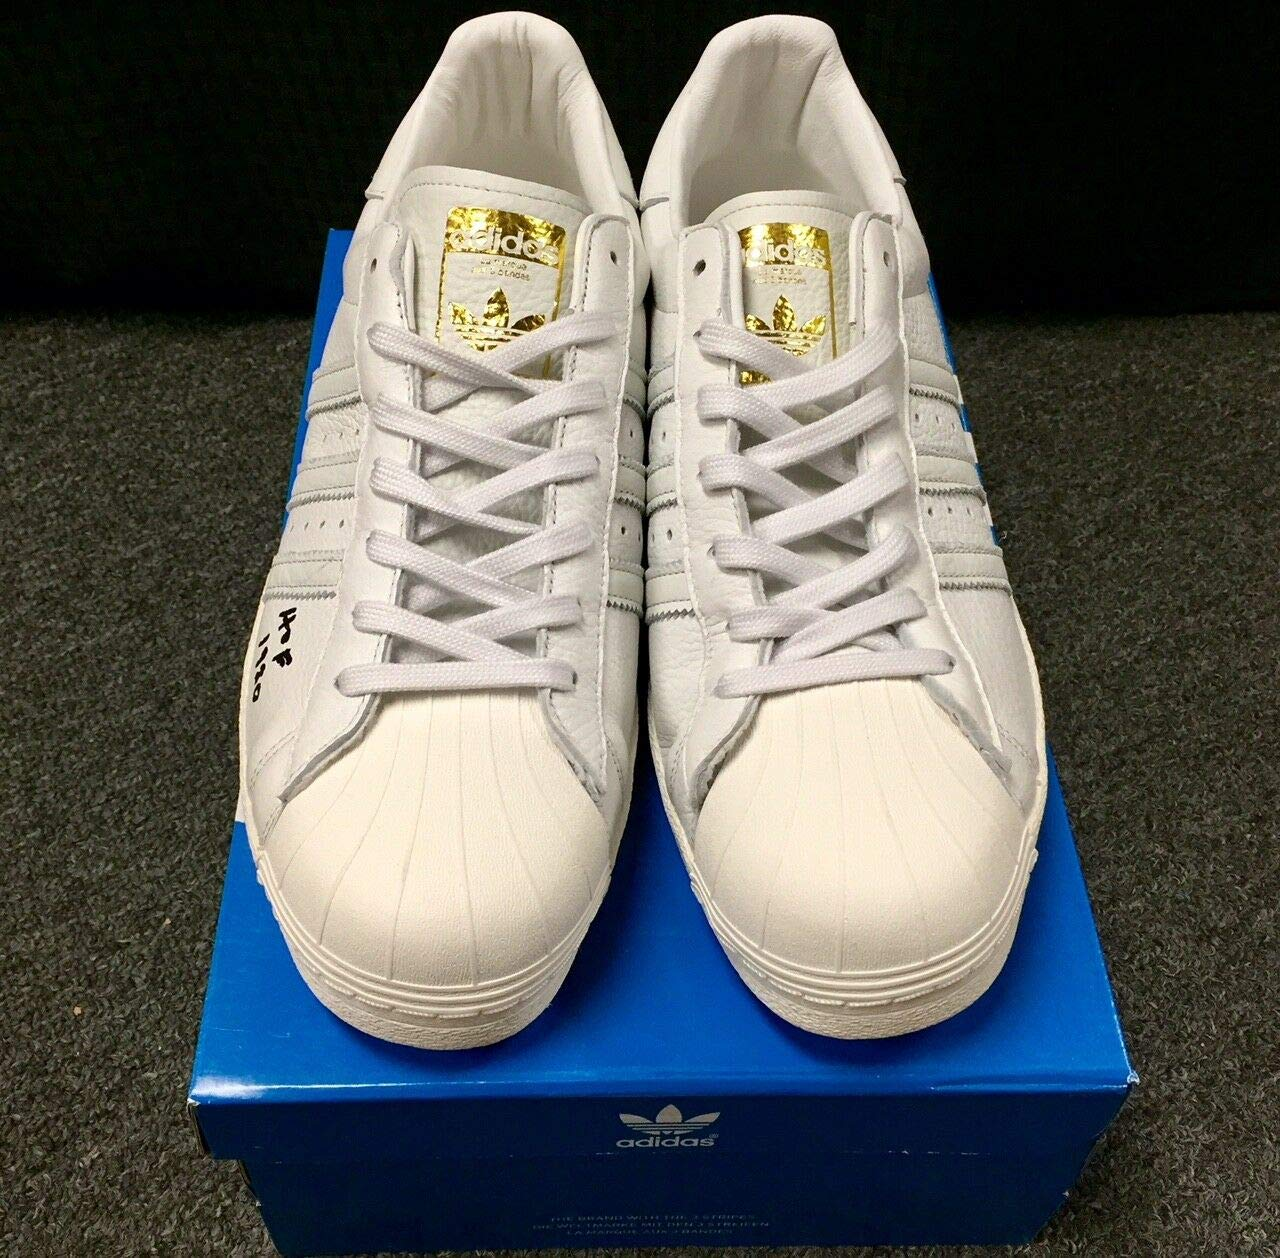 0a4c3f944a3a9 Jerry West Autograph Hof 1980 Autographed Signed Adidas Shoes With ...